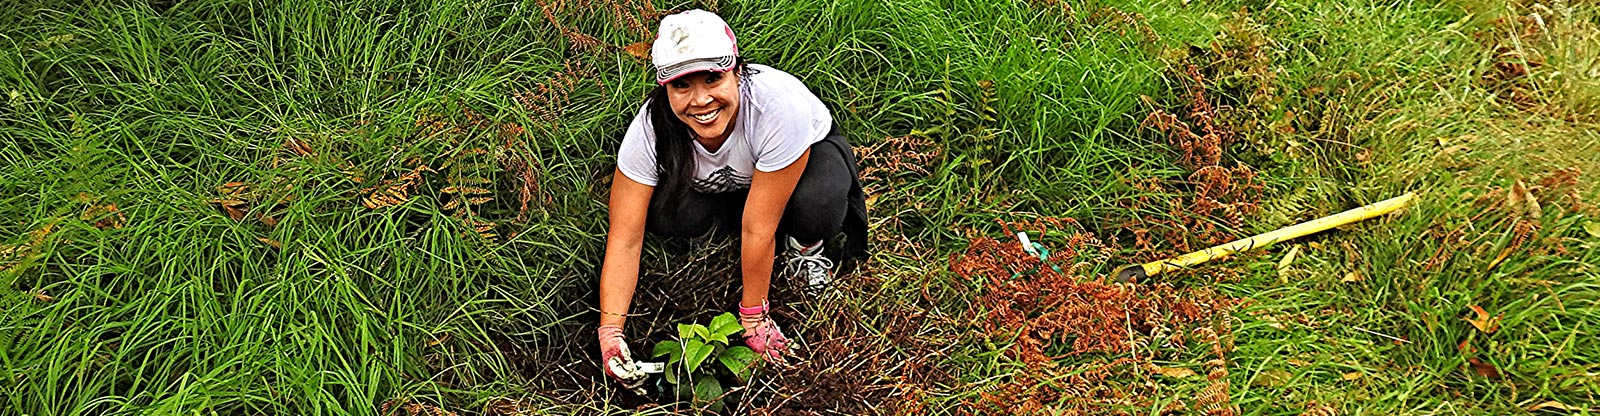 Personal Planting with Friends of Hakalau Forest. Photo by Dean Masutomi | Volunteer Wildlife Refuge Hawaii